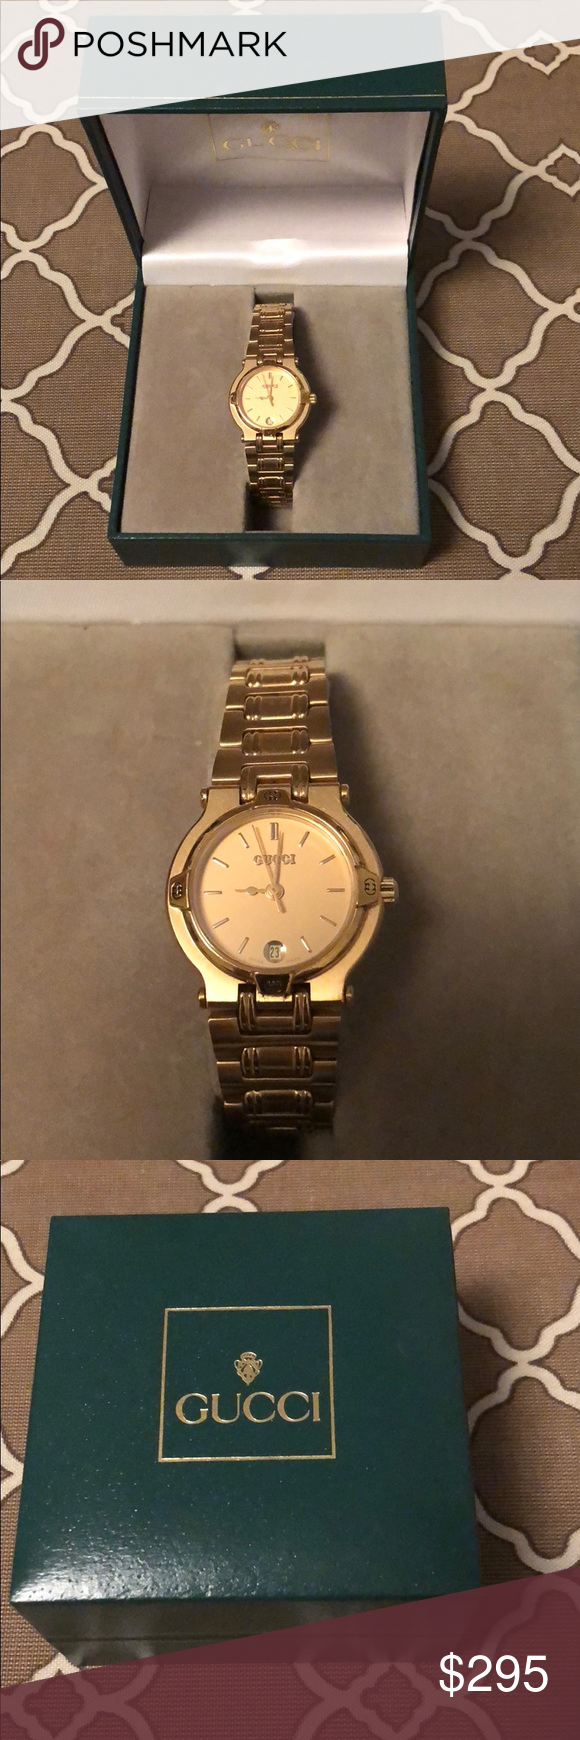 024fc665715 GUCCI authentic women s watch in original box. Excellent condition. GUCCI  authentic gold face on gold tone women s watch in original box.